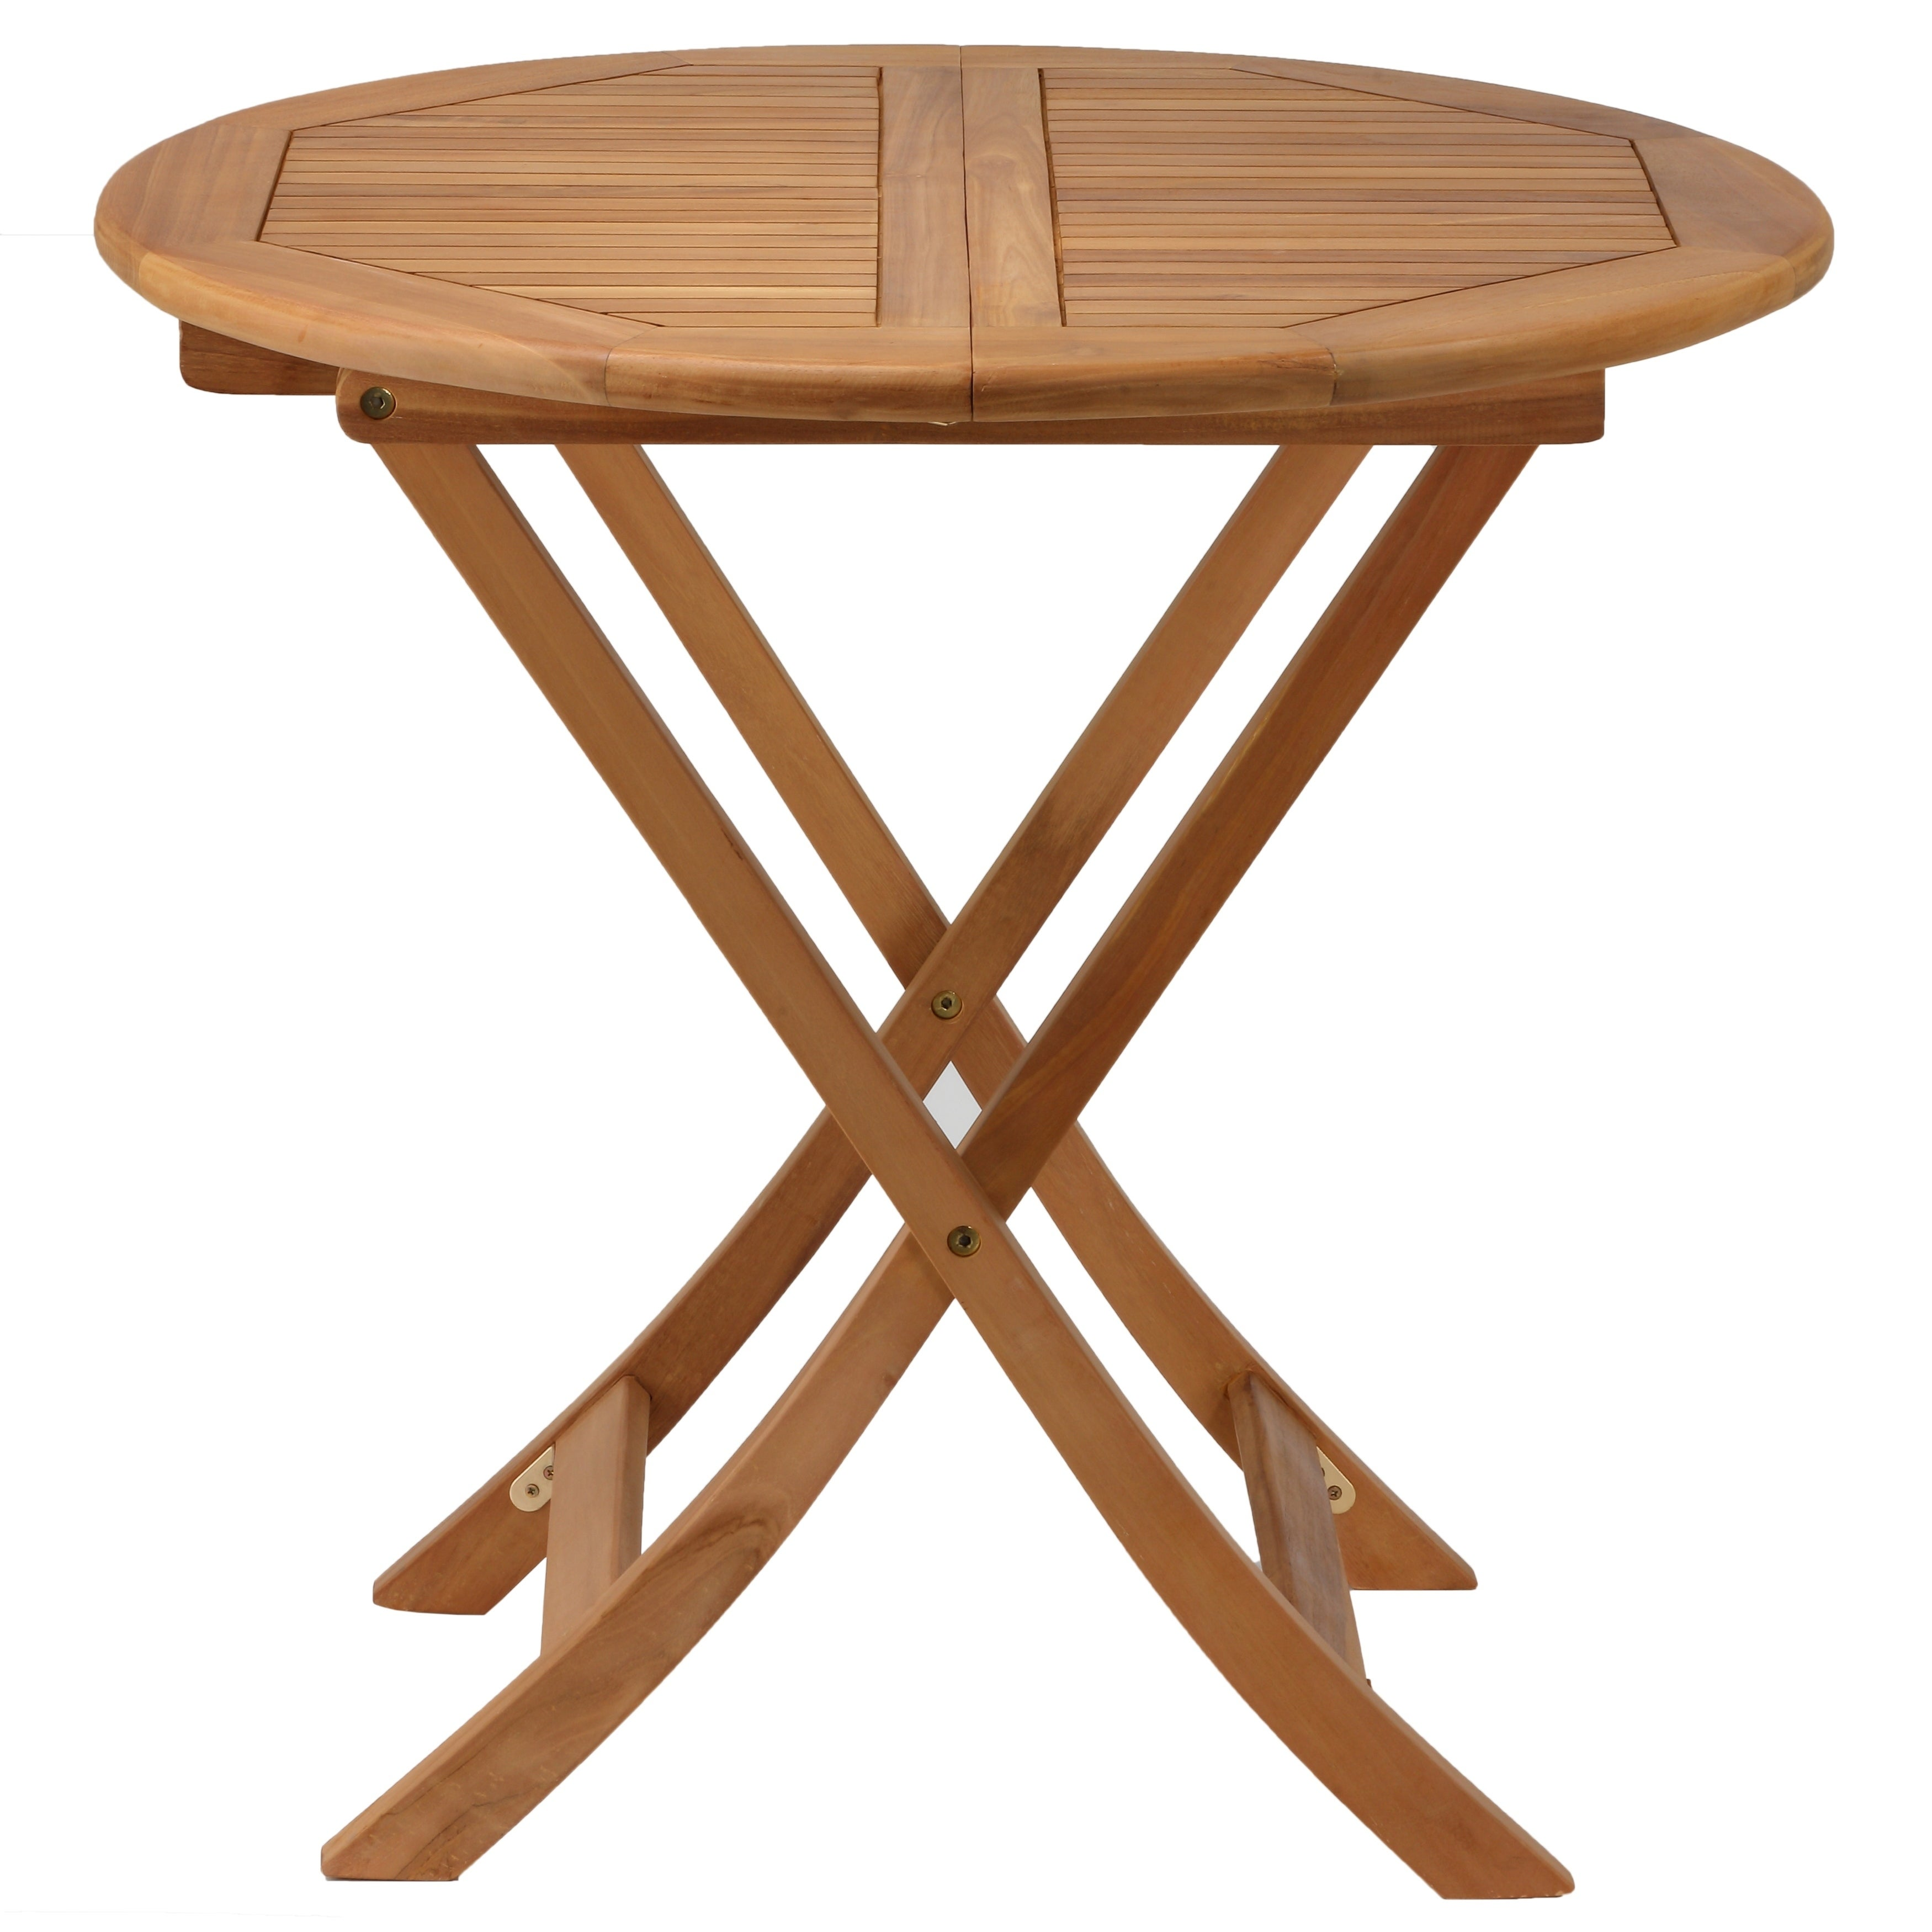 Bare Decor Darcy Outdoor Teak Folding Dining Table 31 Round 5 W X L 30 H